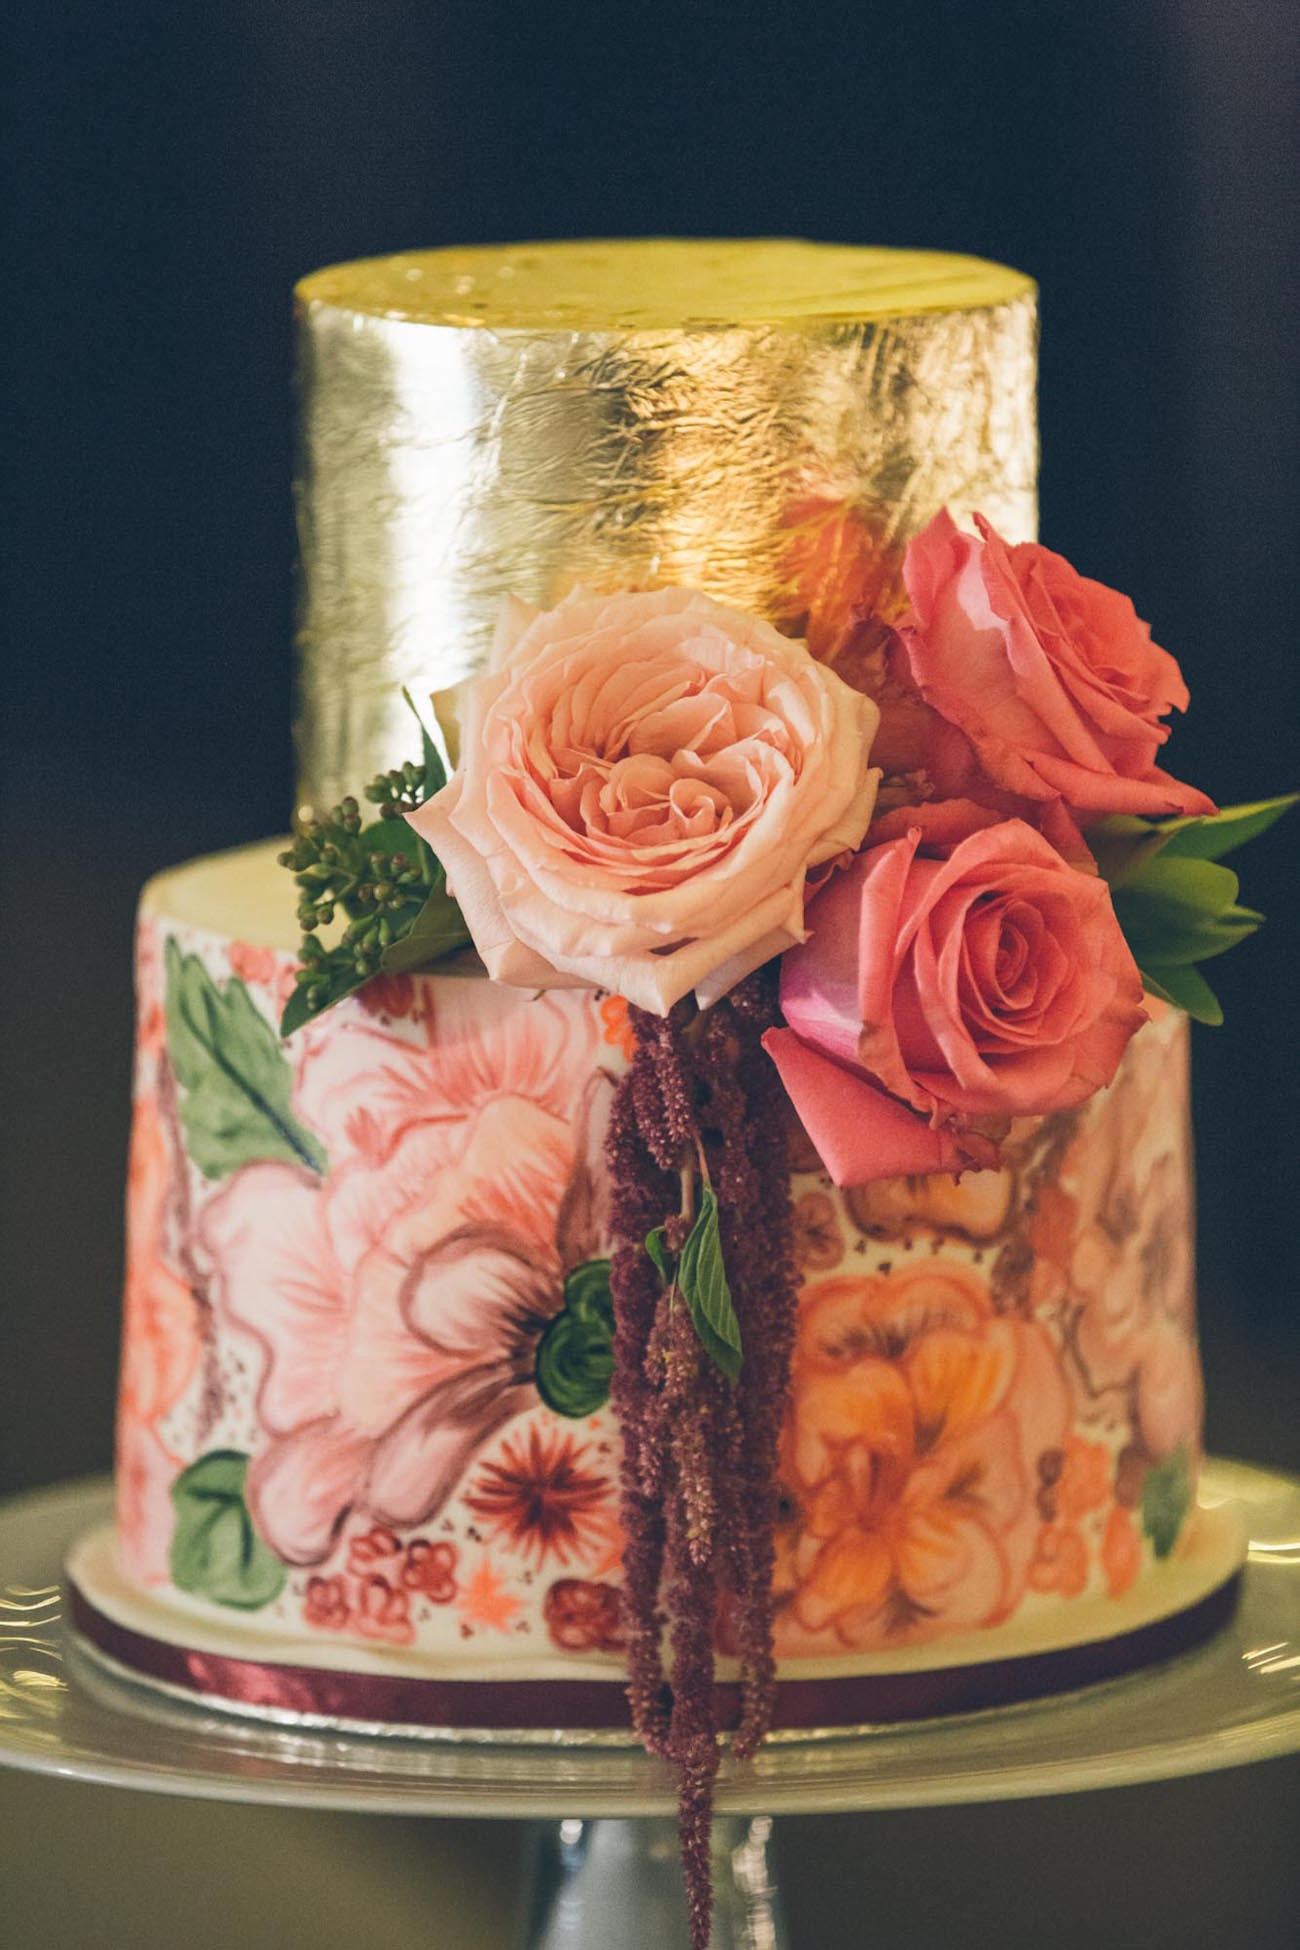 Floral print & gold metallic wedding cake | Credit: Shanna Jones